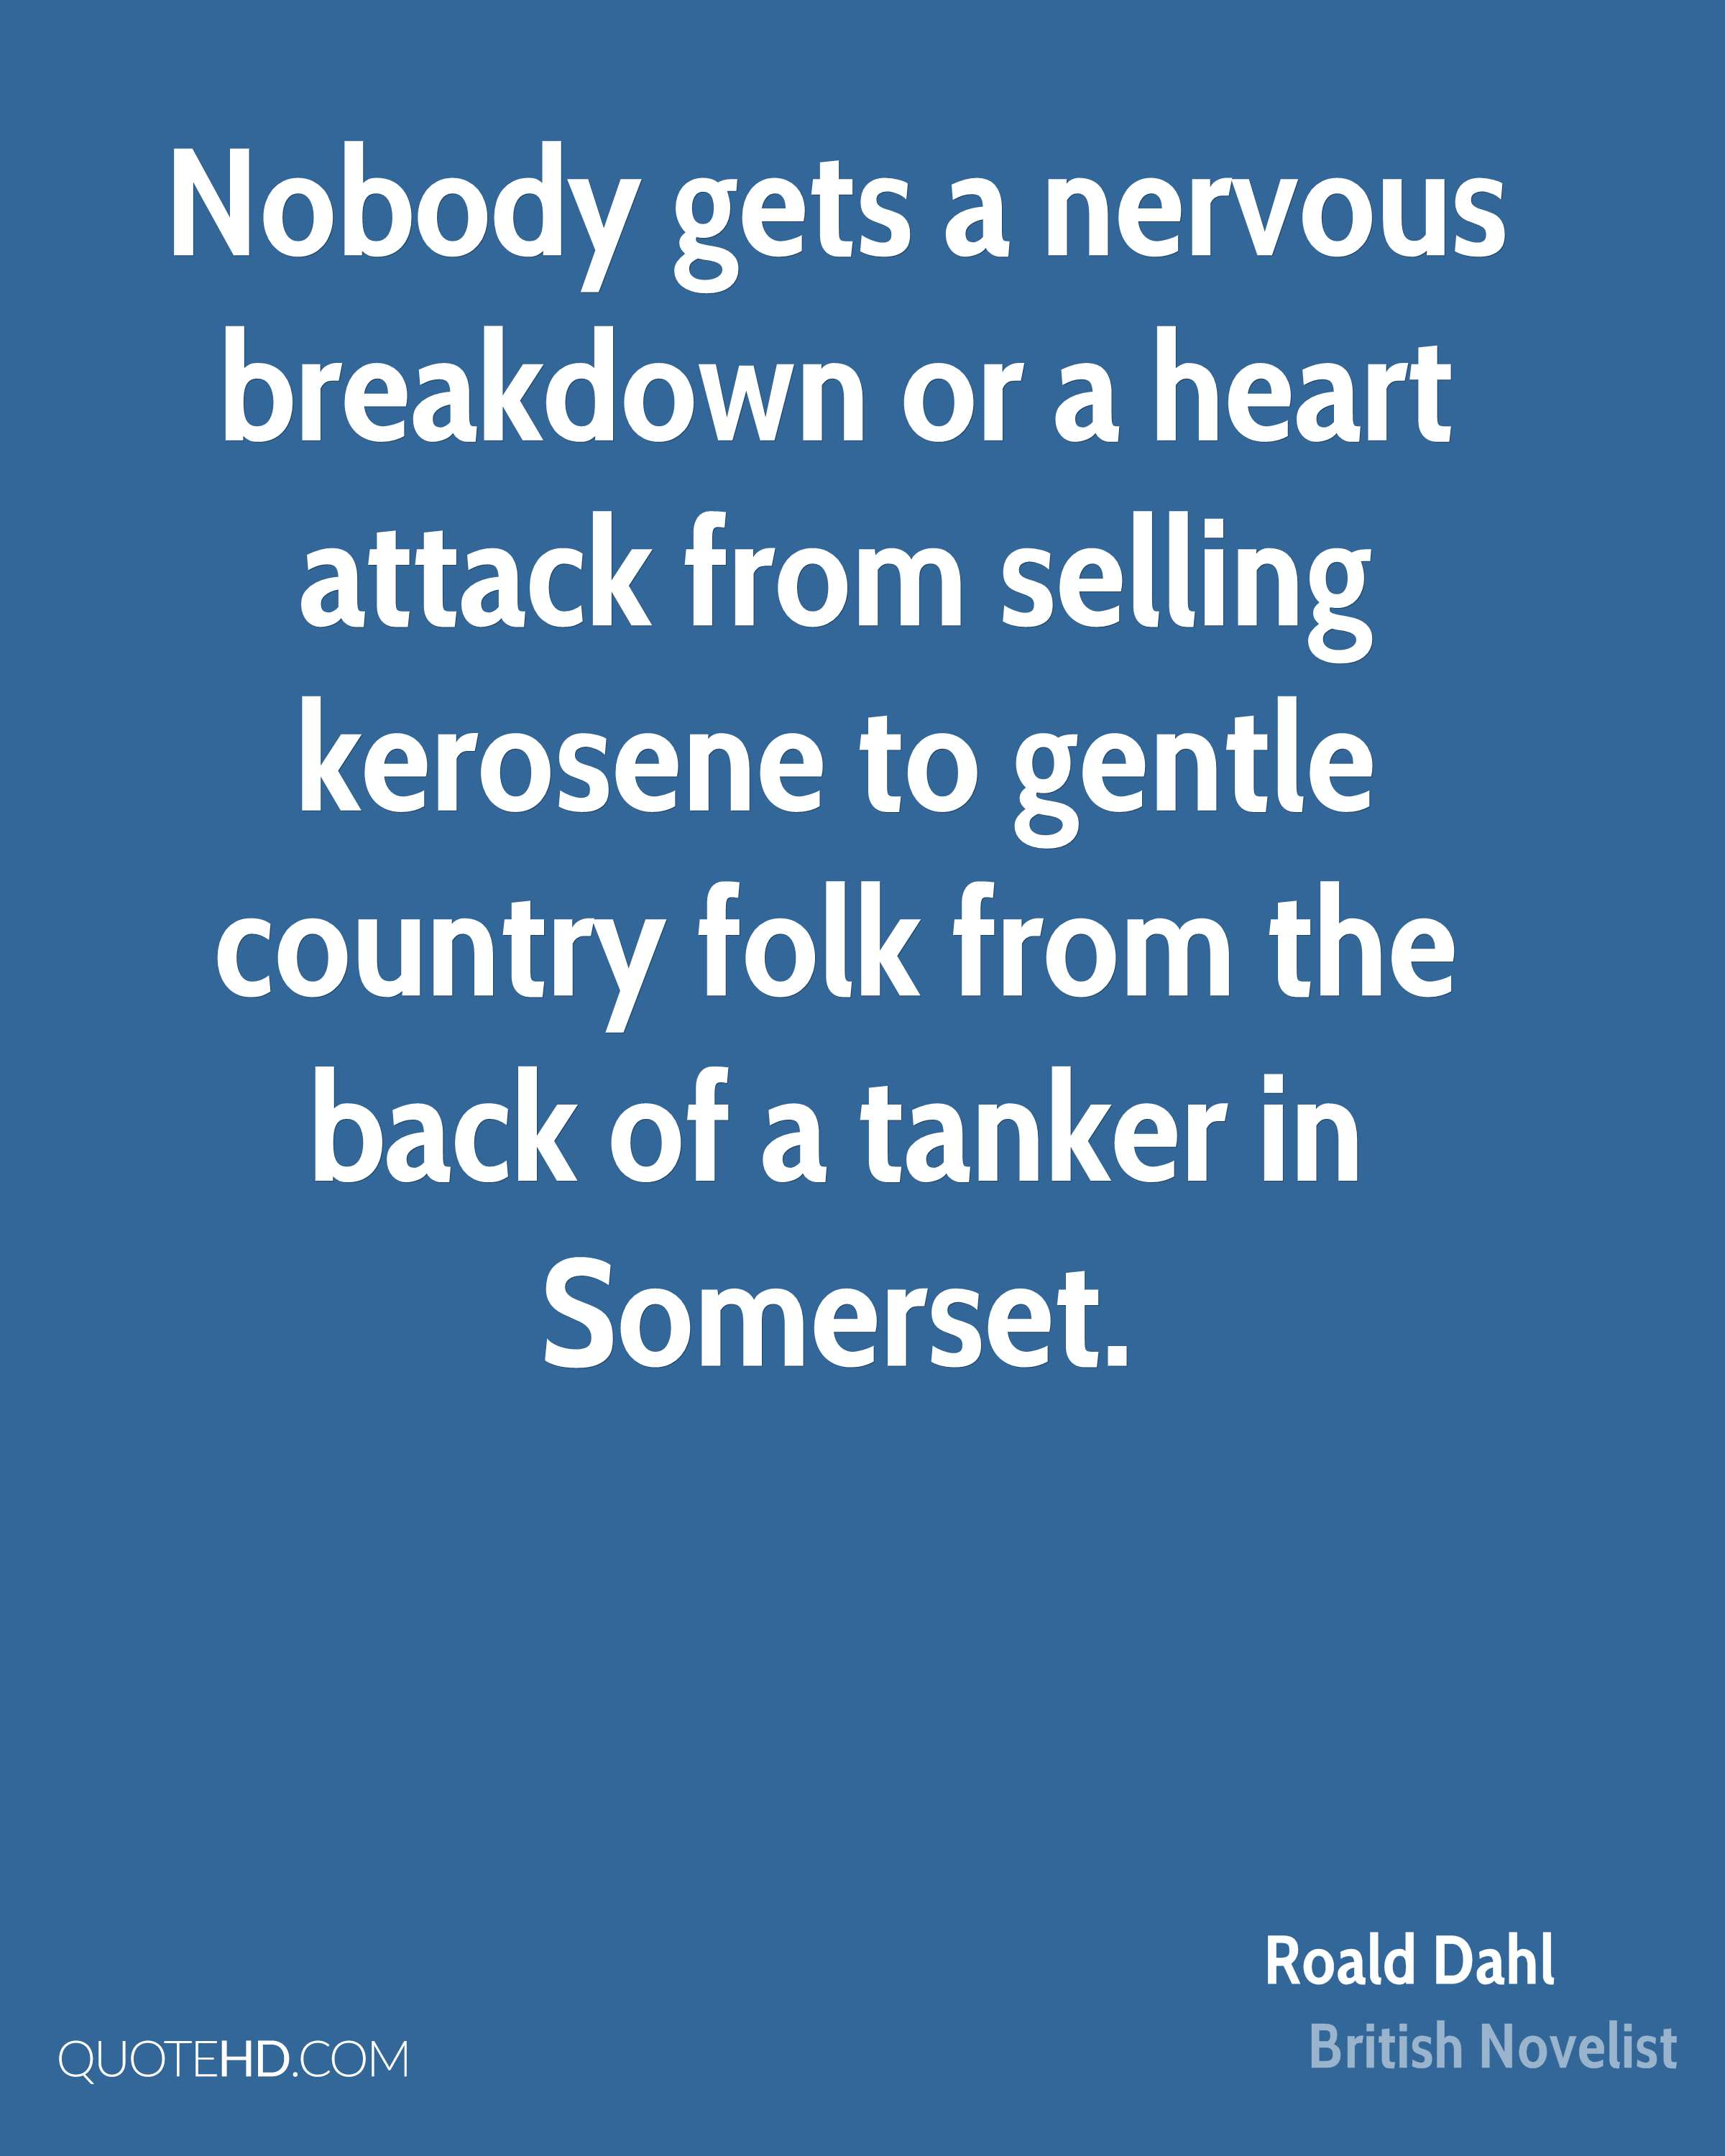 Nobody gets a nervous breakdown or a heart attack from selling kerosene to gentle country folk from the back of a tanker in Somerset.